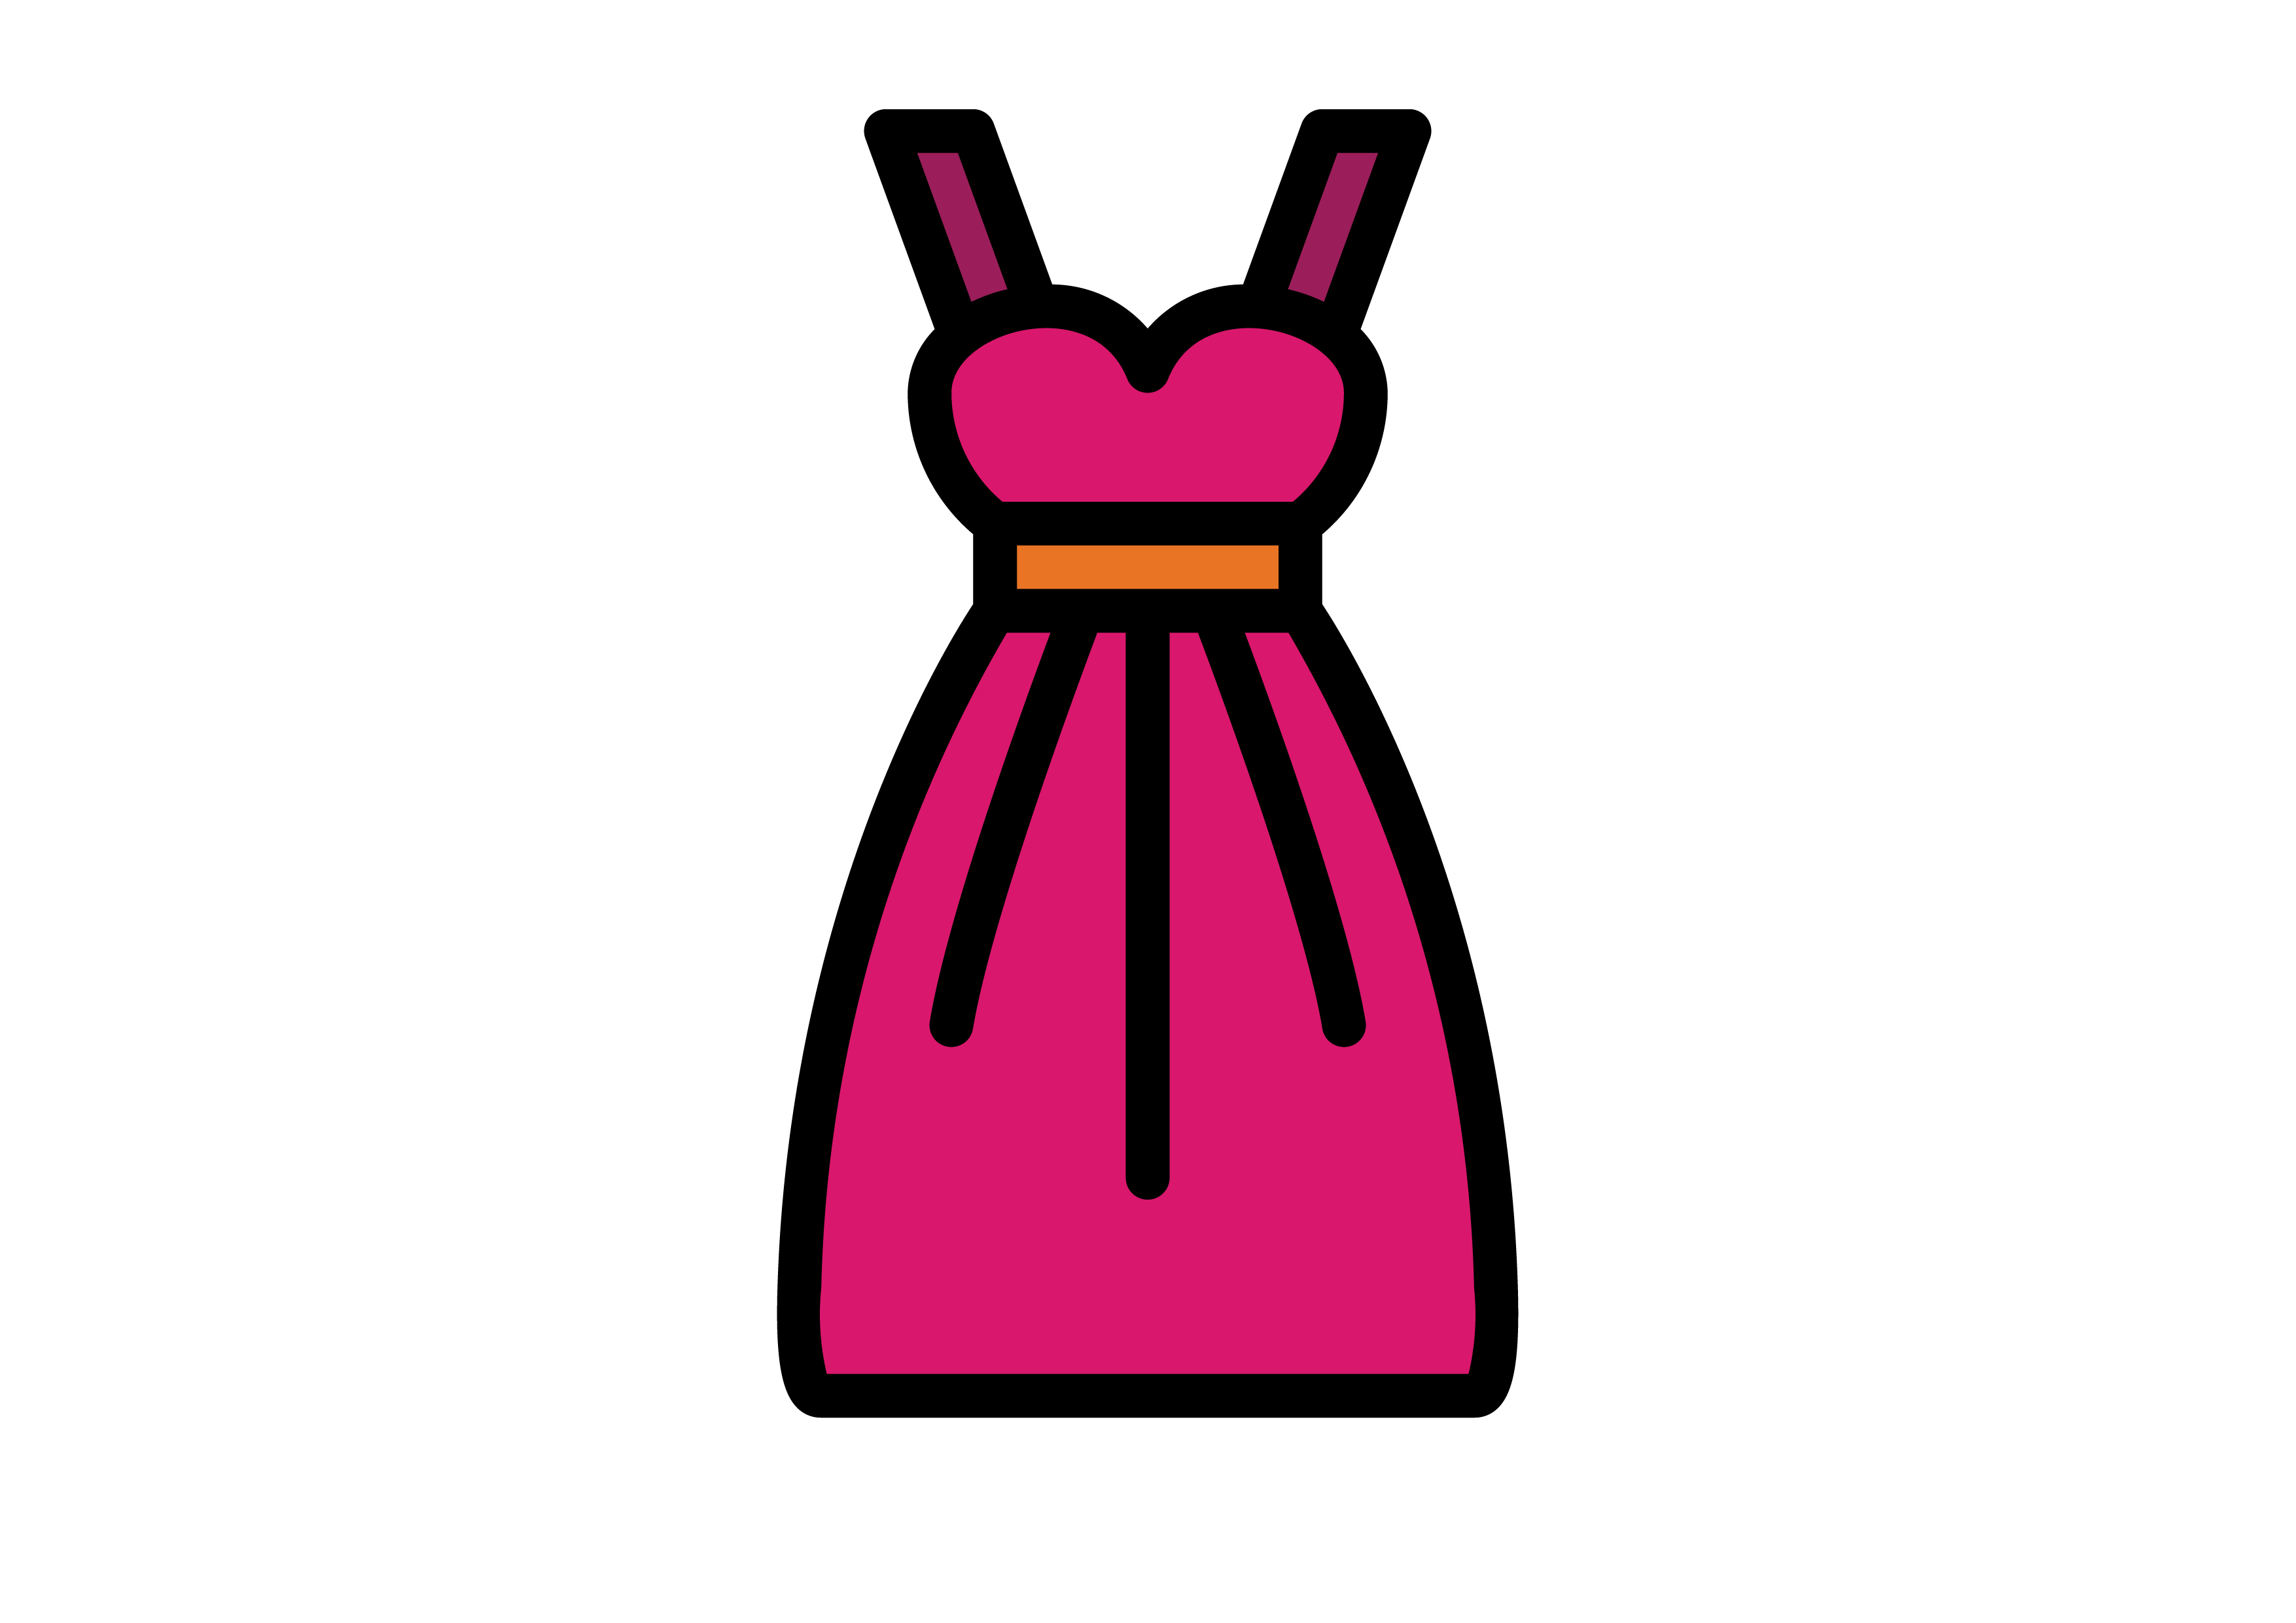 Download Free Beauty Dress Graphic By Cool Coolpkm3 Creative Fabrica for Cricut Explore, Silhouette and other cutting machines.